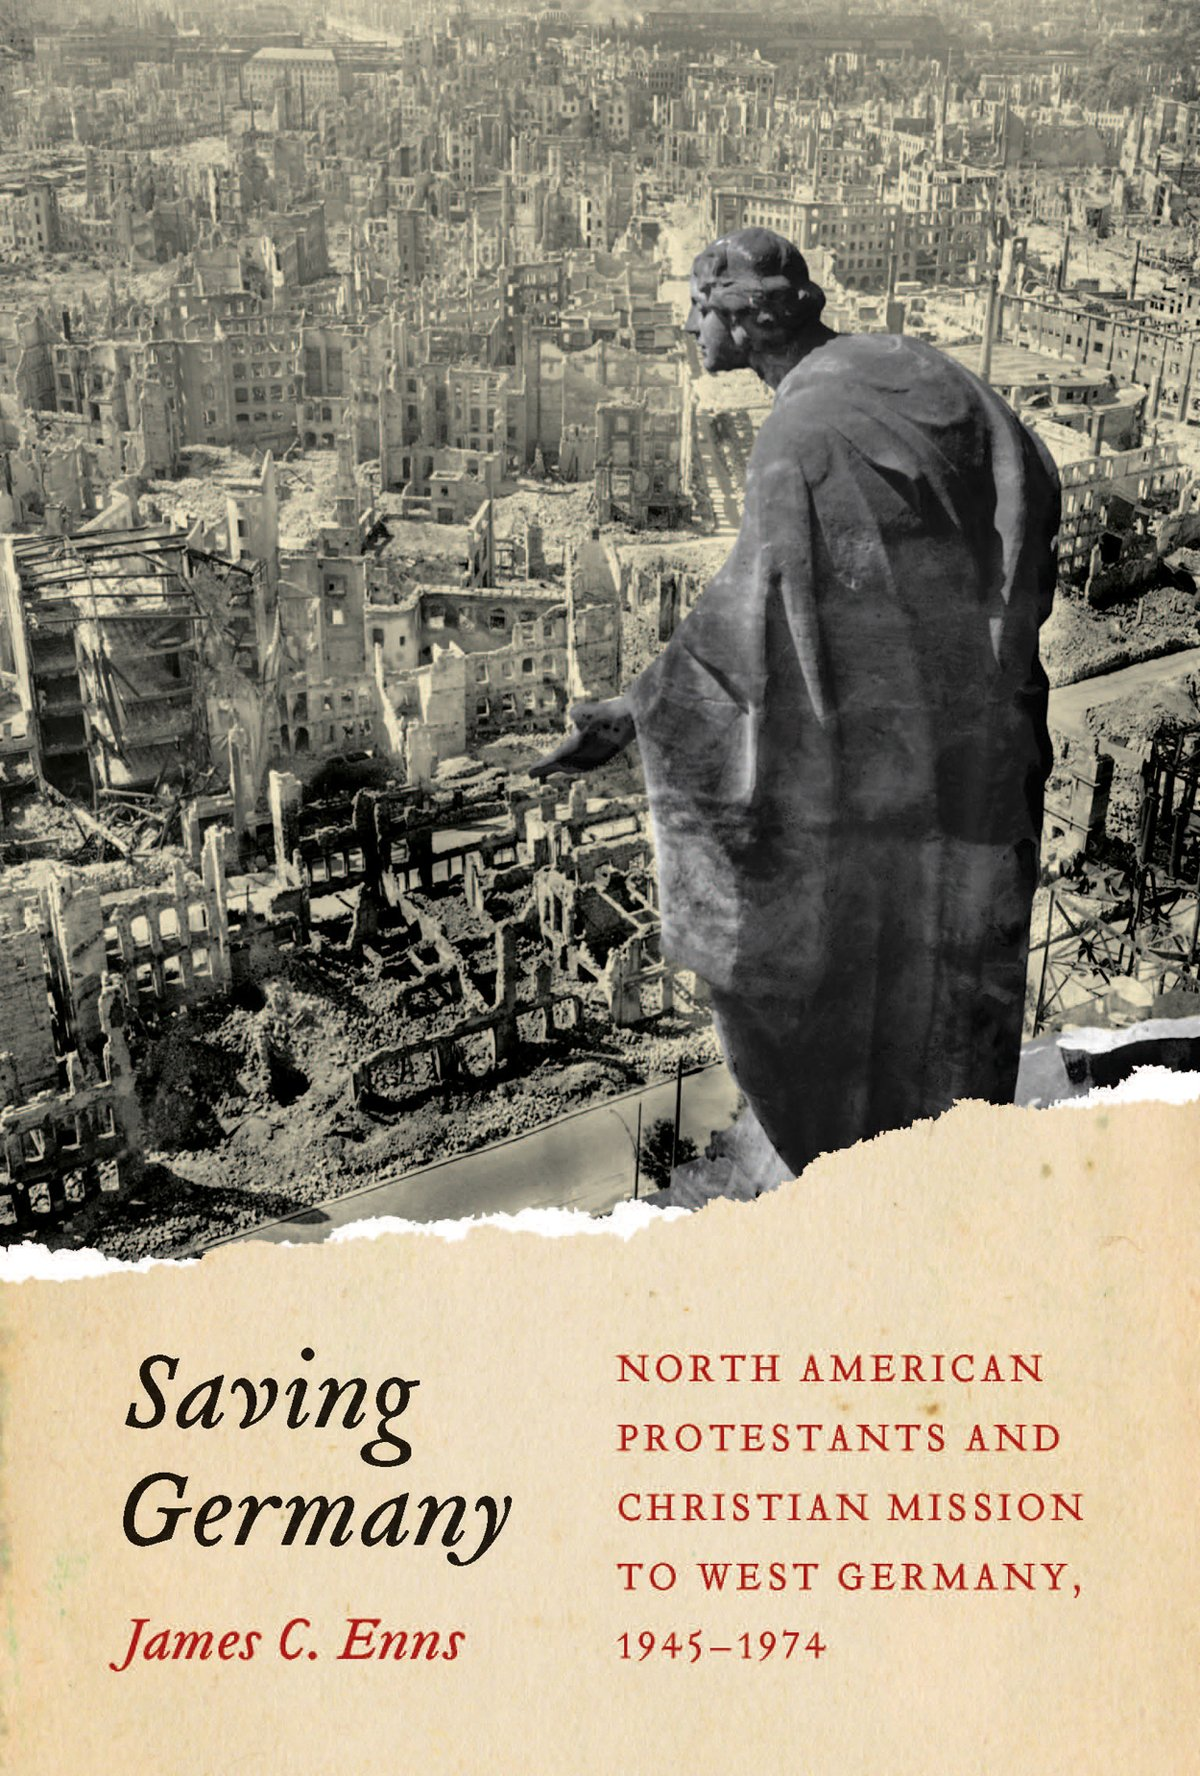 Read Online Saving Germany: North American Protestants and Christian Mission to West Germany, 1945 -1974 (Mcgill-queen's Studies in the History of Religion, Series 2) pdf epub